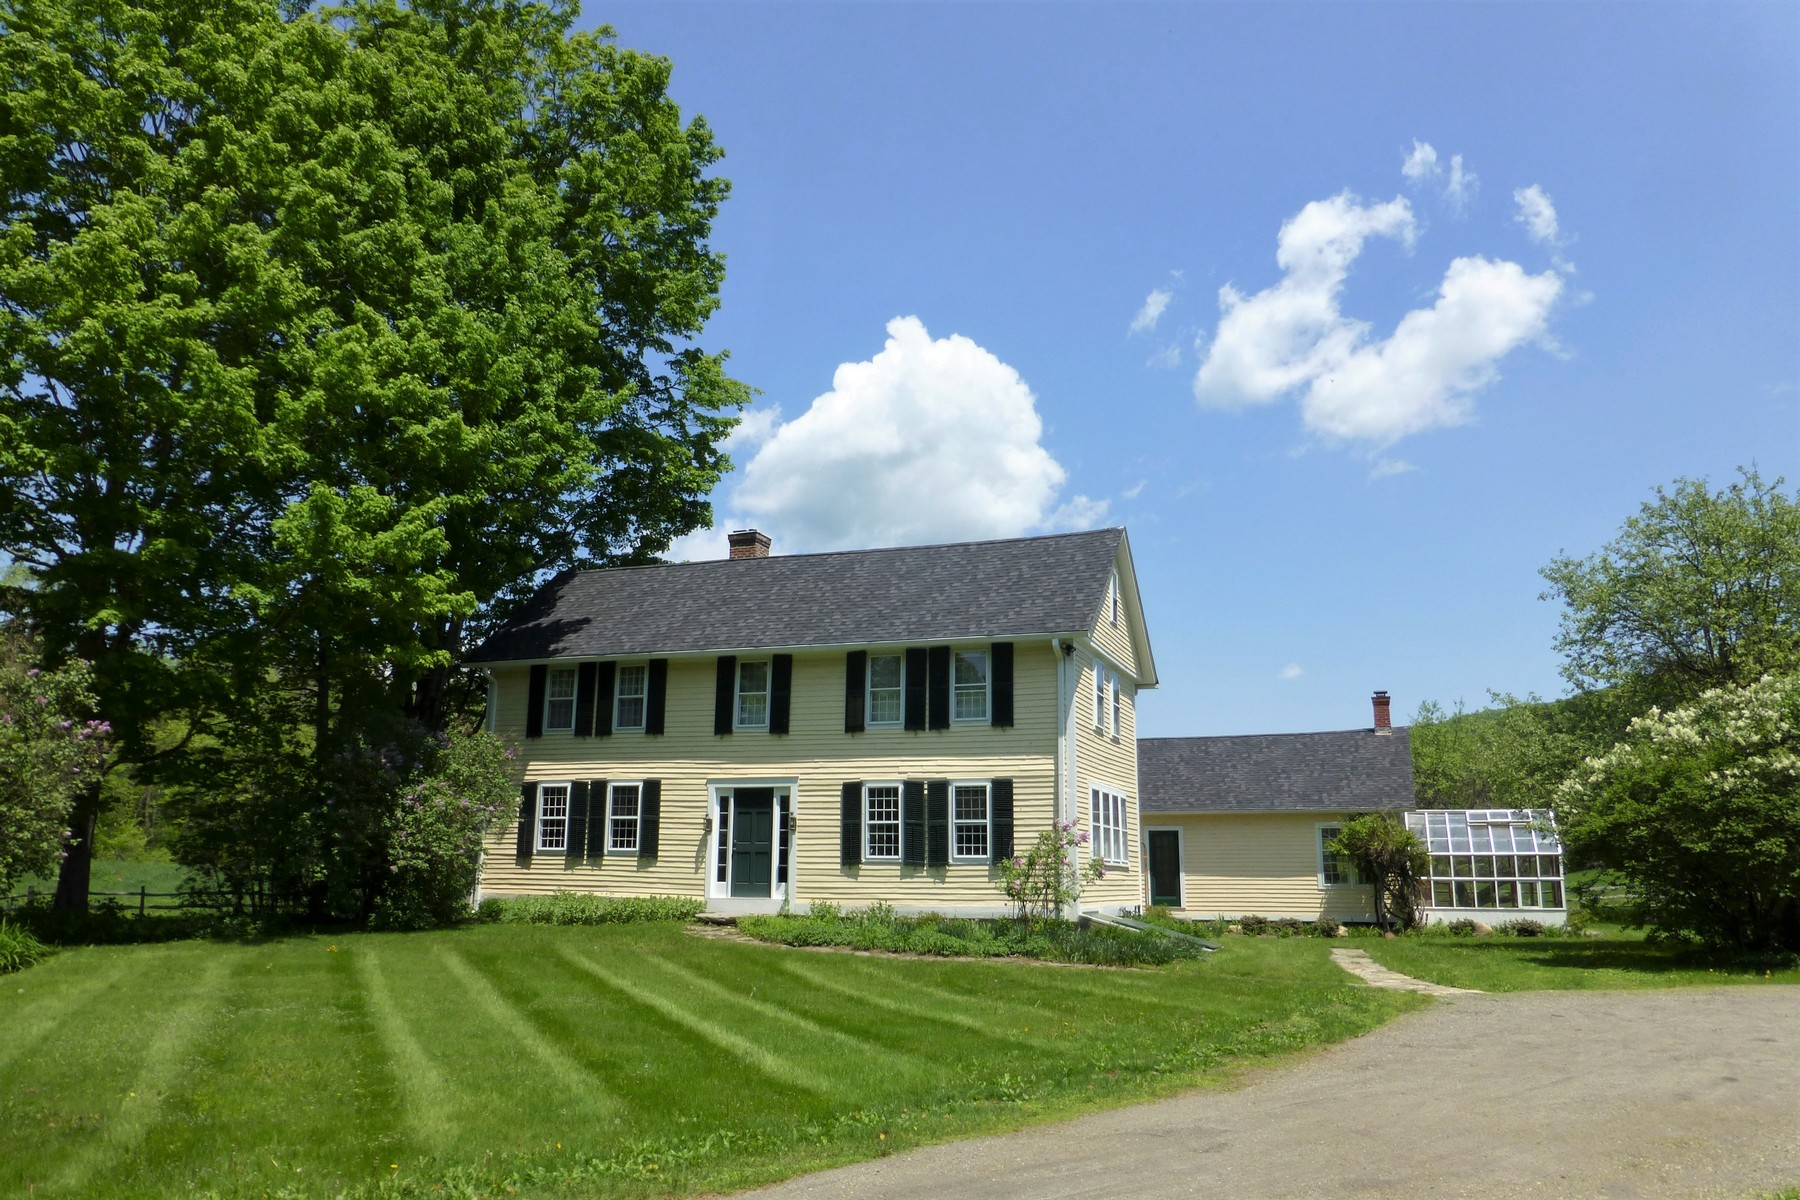 Single Family Home for Sale at Stunning Historic Home on Acreage 872 Grassy Brook Rd Brookline, Vermont 05345 United States